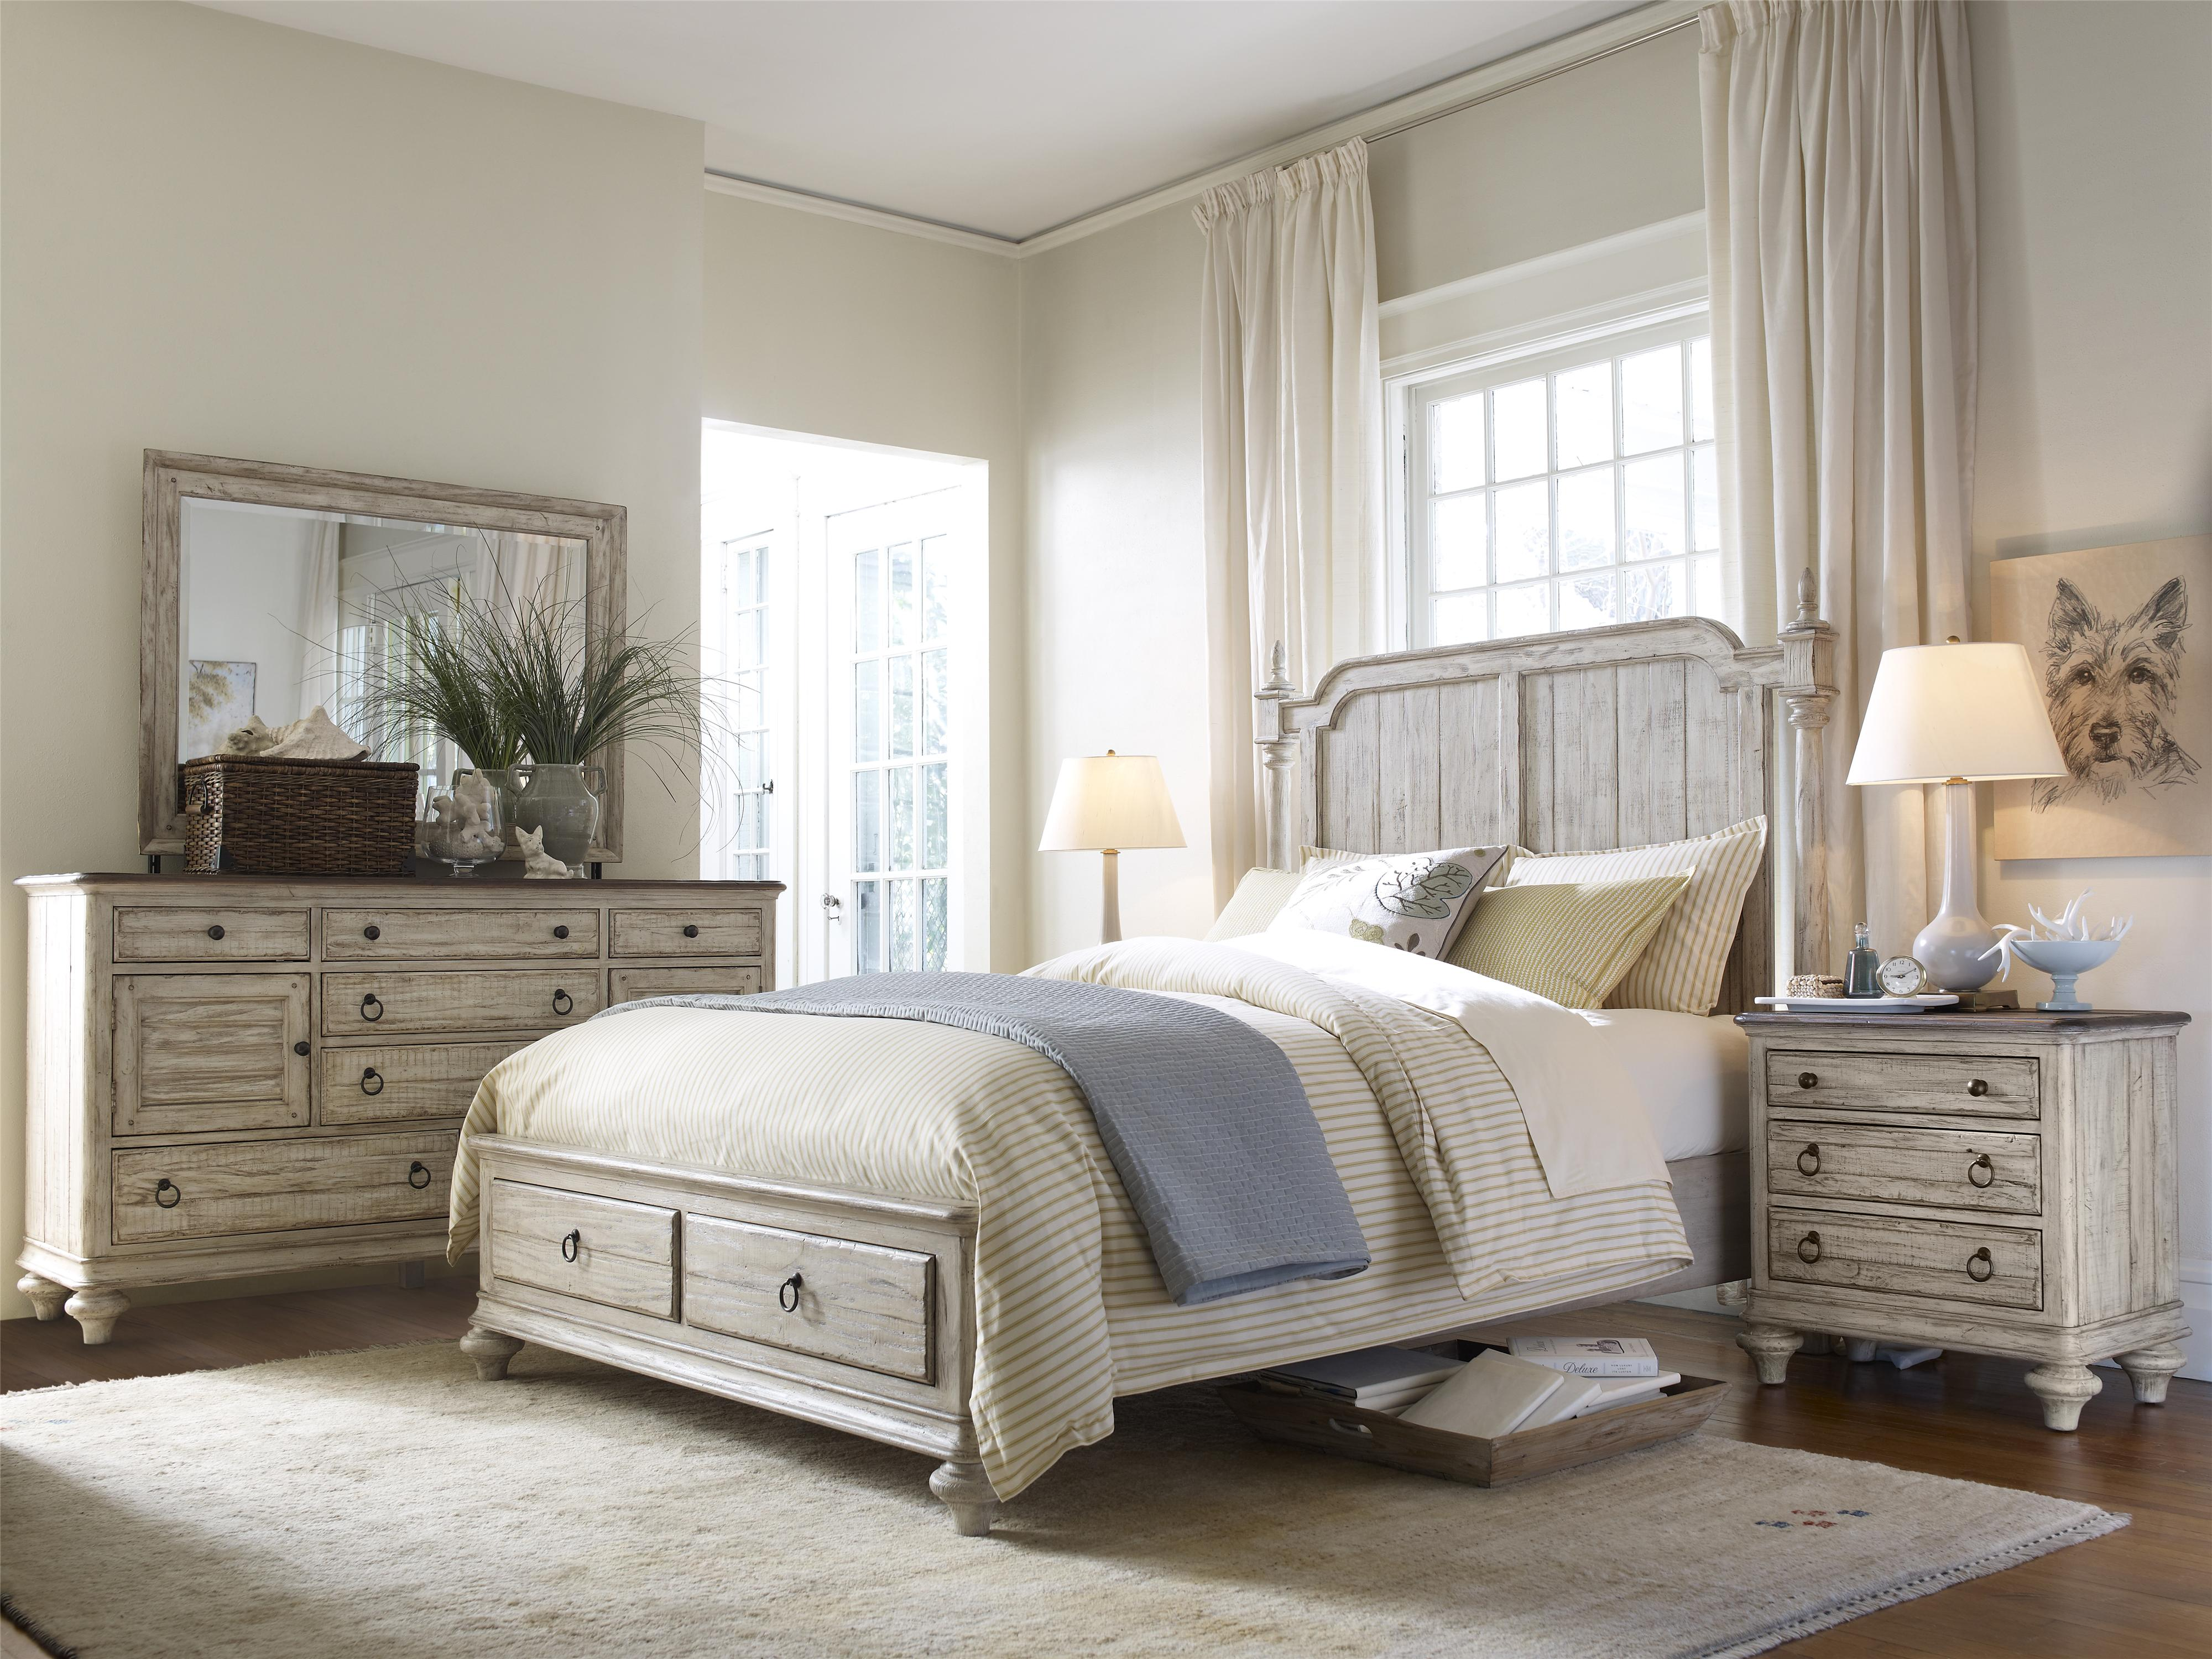 with accord trends furniture sets kincaid rice exterior house in great panel queen by bed carved carriage bedroom